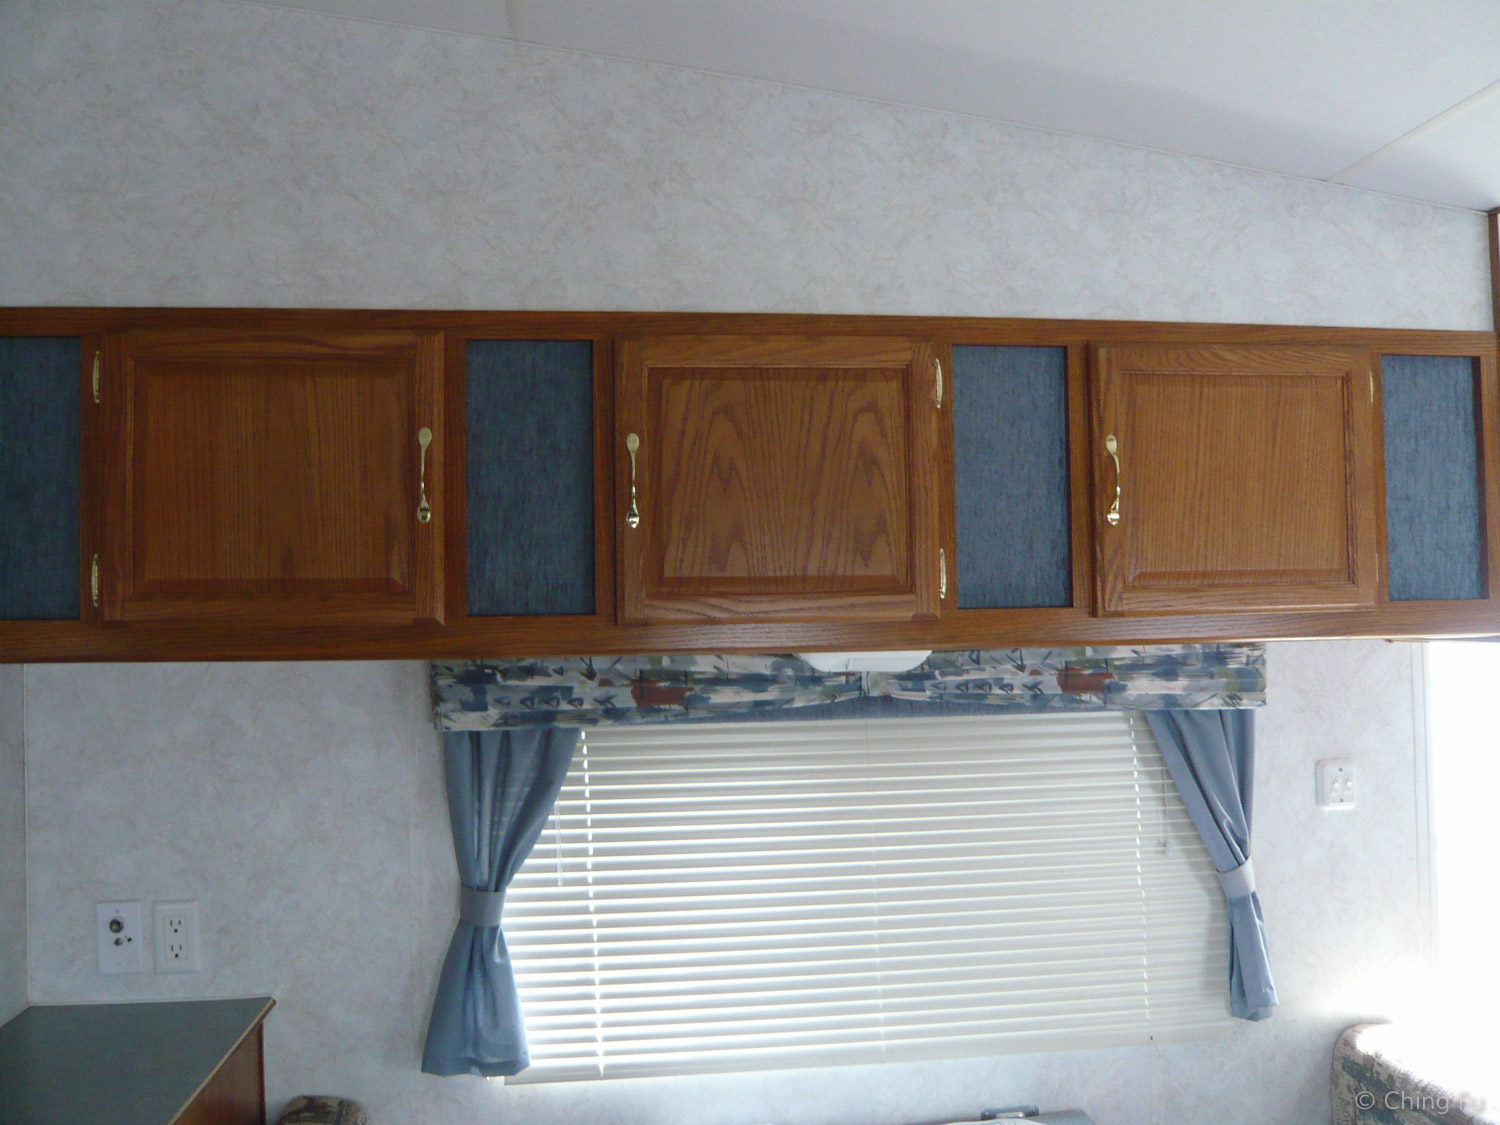 Original RV valances.